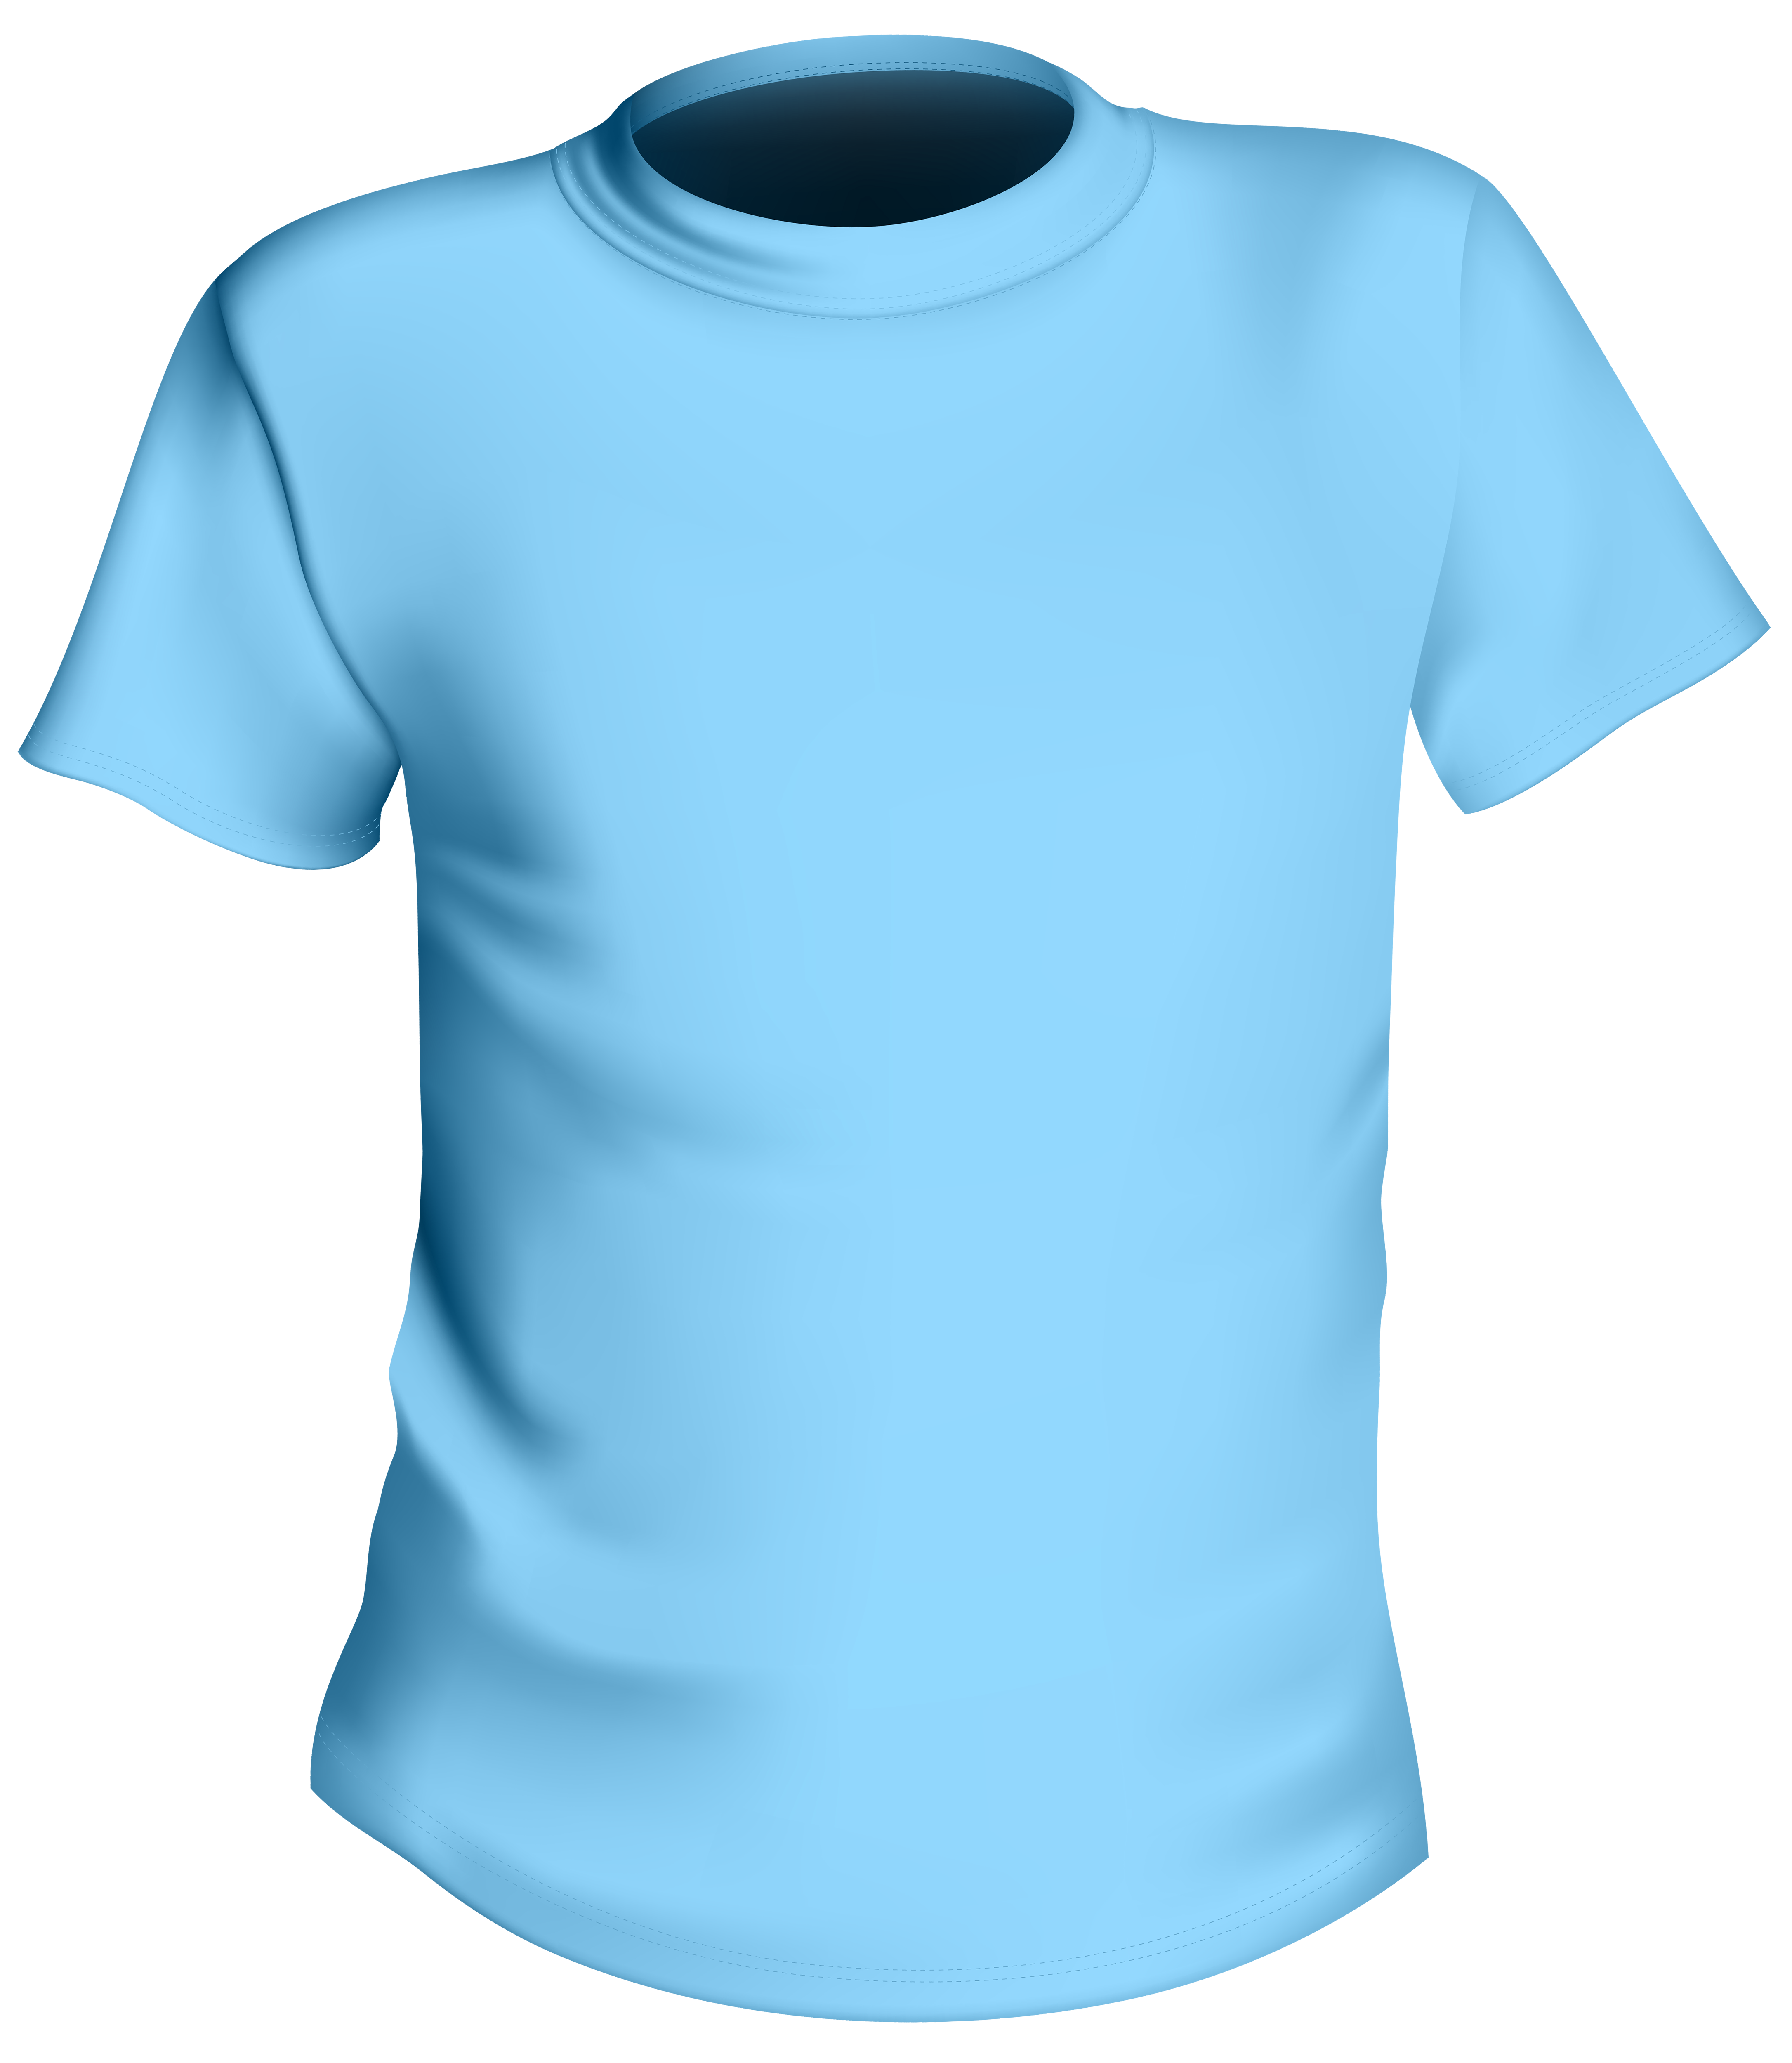 Blue male png best. Shirt clipart vector transparent